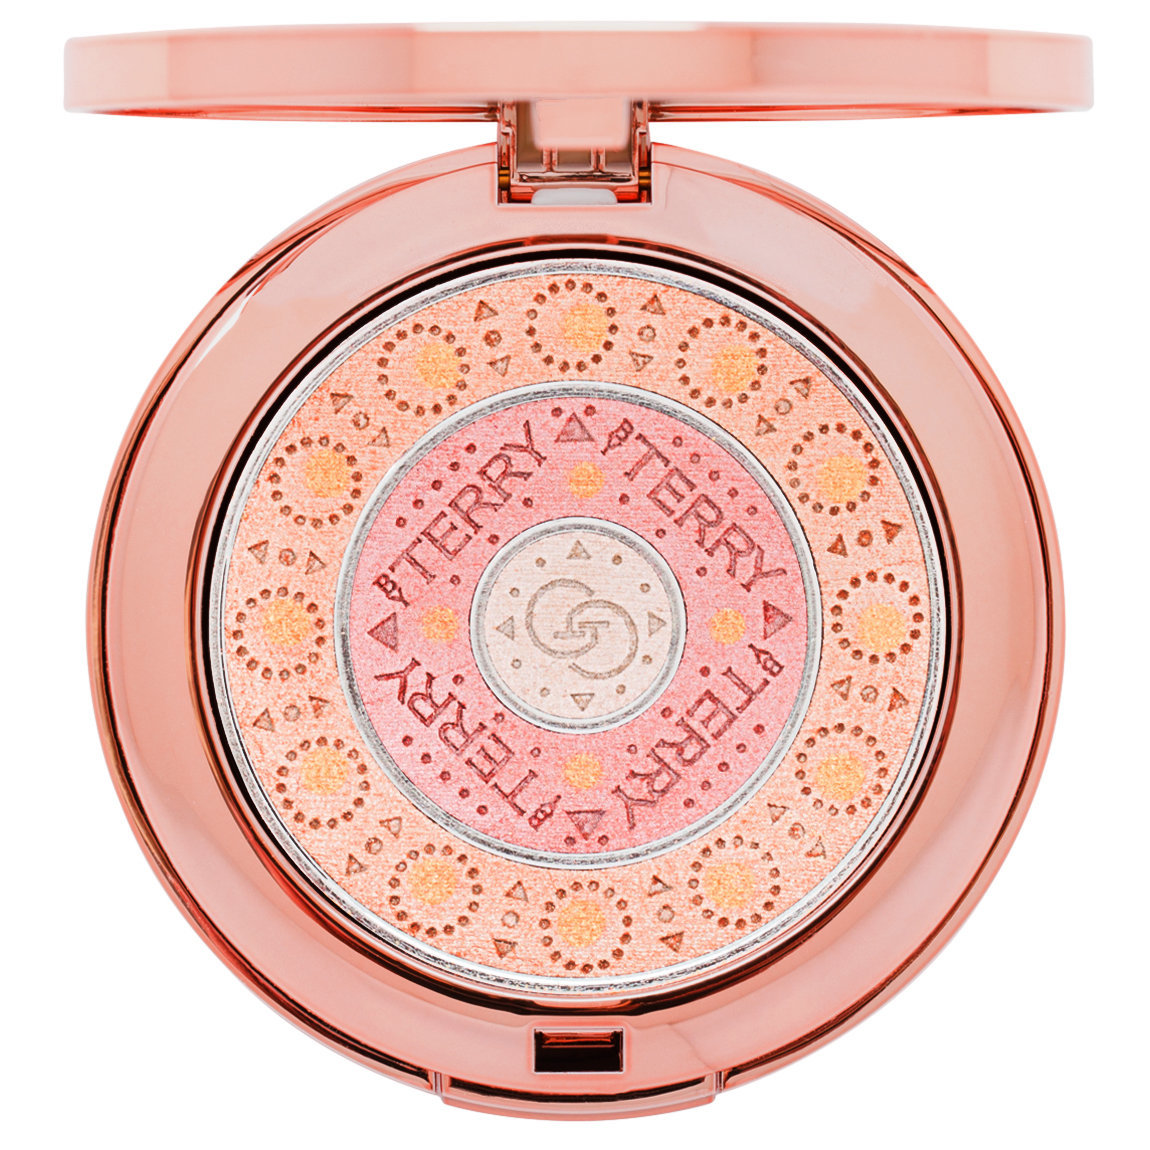 BY TERRY Gem Glow Trio Compact product smear.